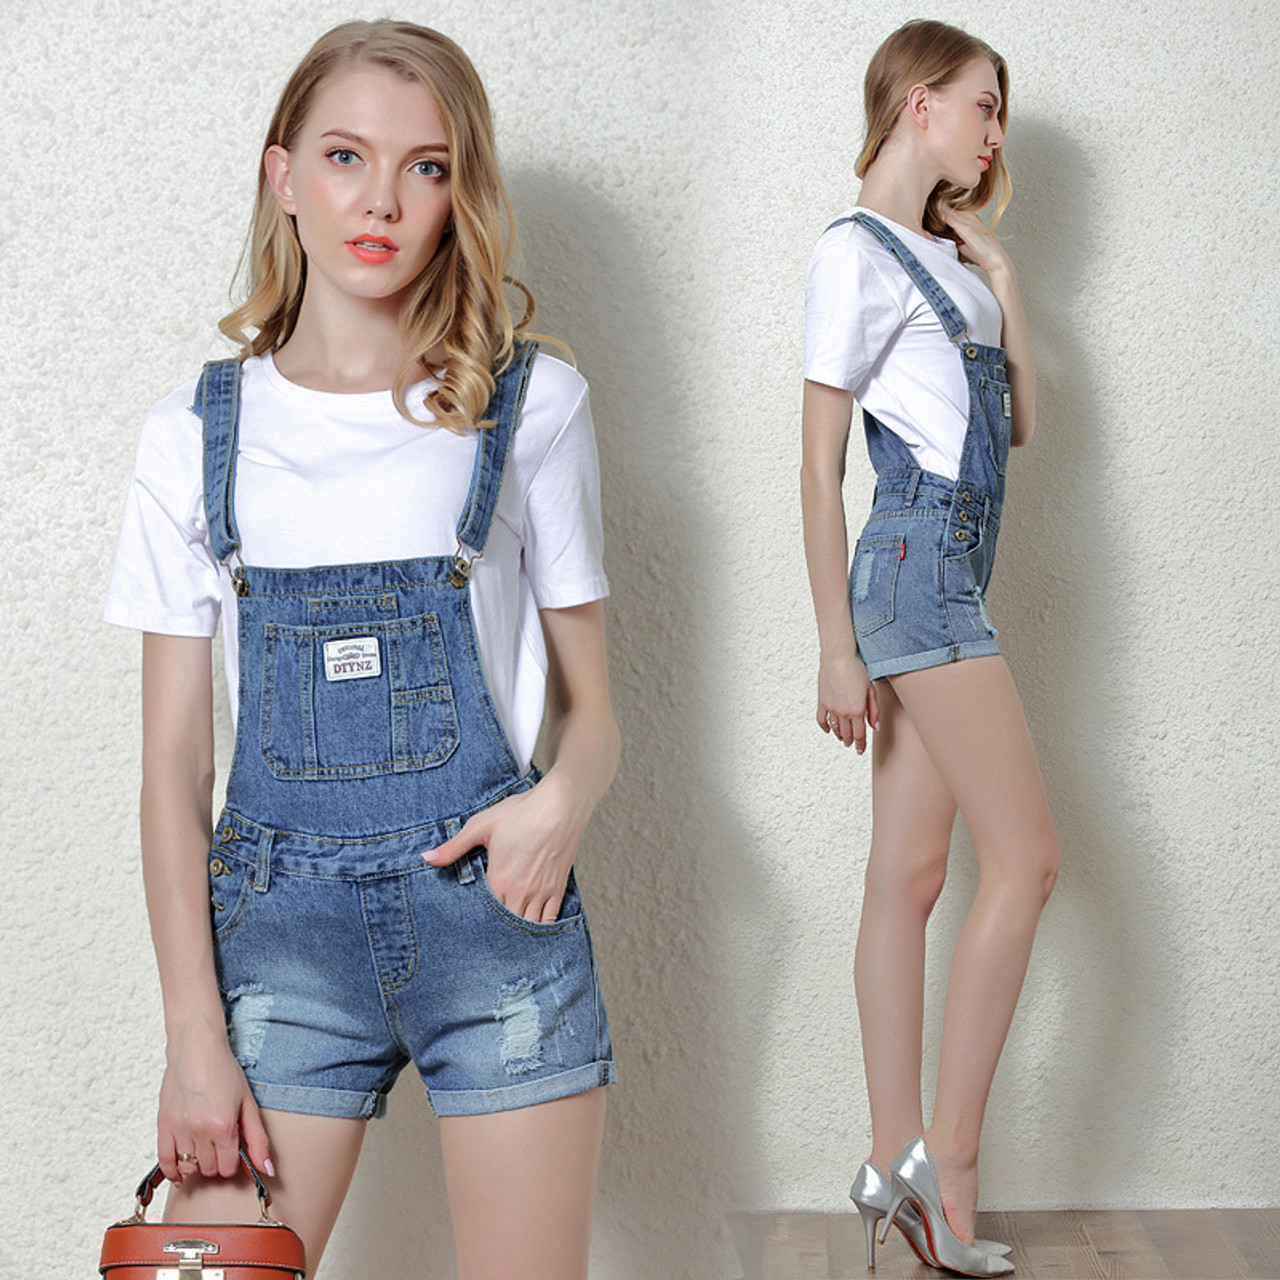 20b247adcccc ... Rlyaeiz Rompers Womens Jumpsuit Body Feminino Suspender Jeans Jumpsuits  Women Overalls 2018 Summer New Hole Denim ...